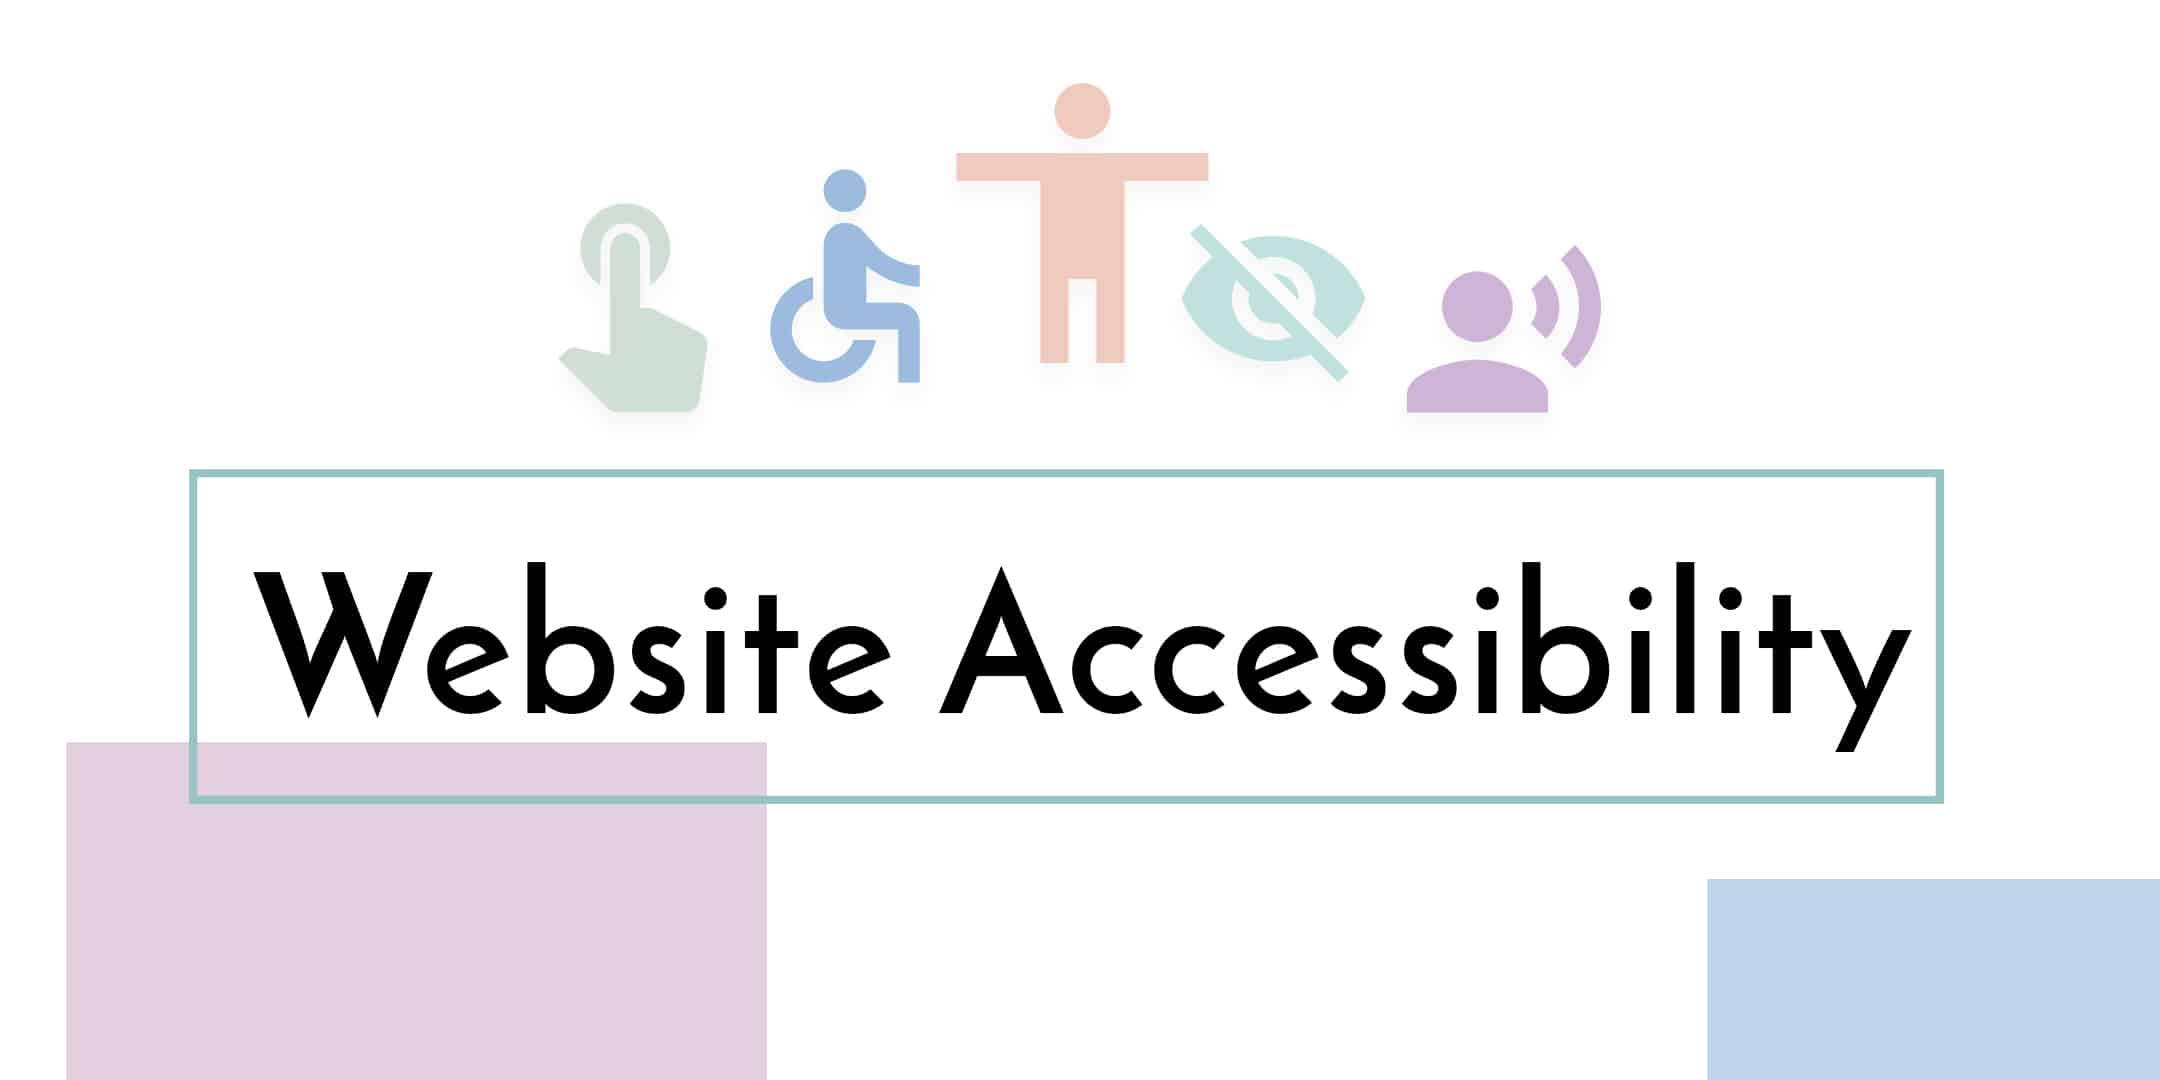 A spectrum of colorful accessibility icons over the words Website Accessibility